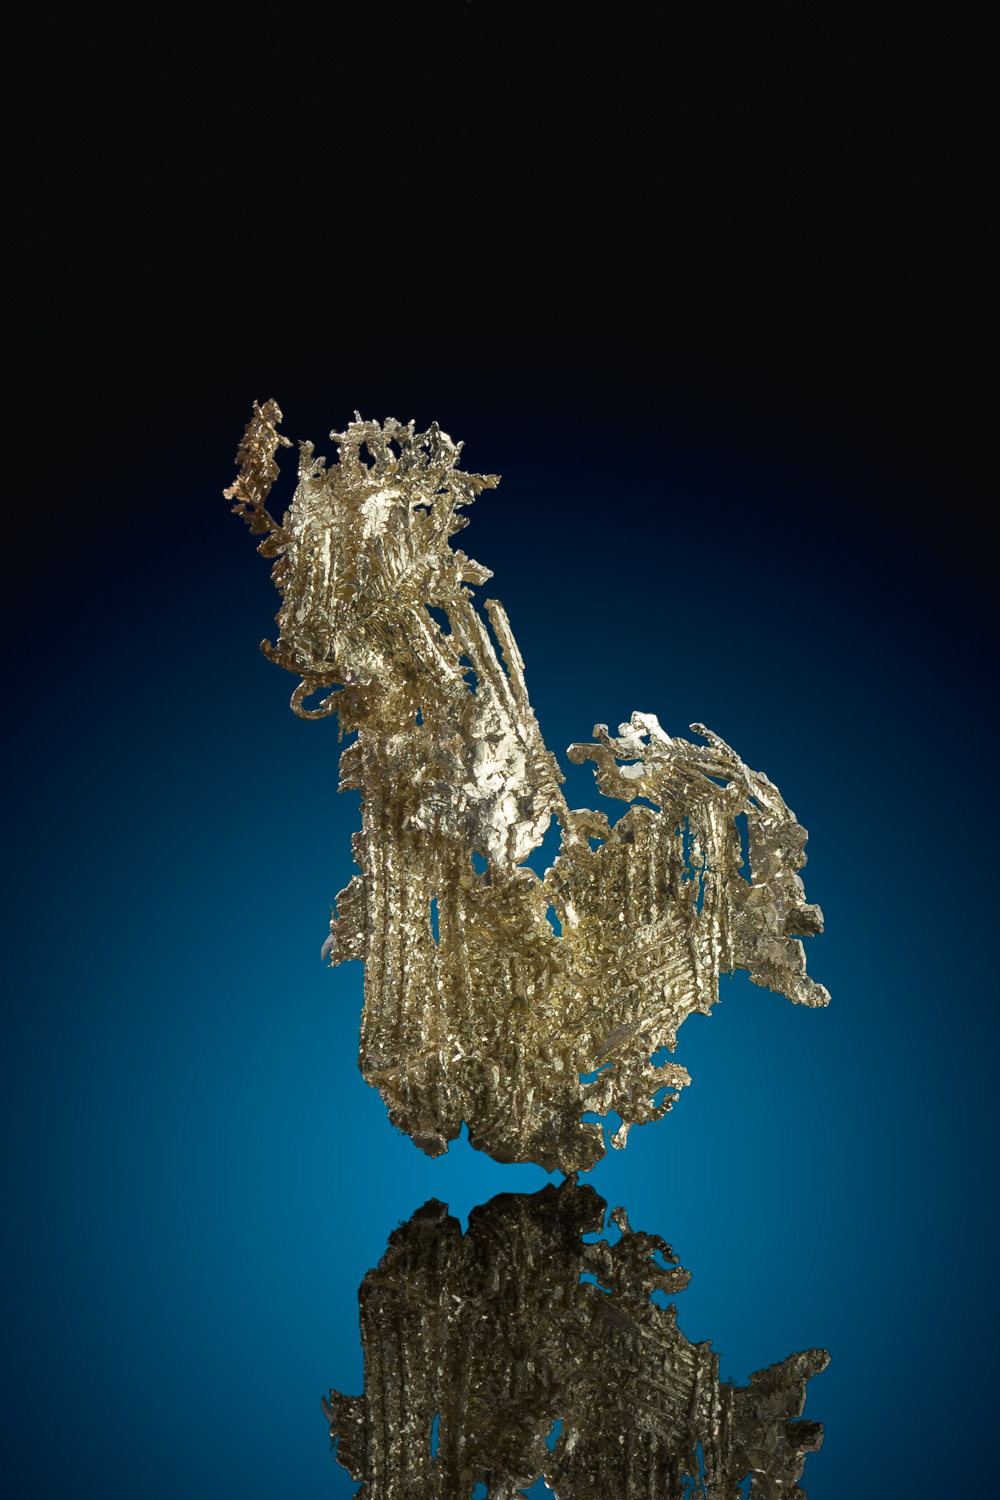 Brilliant Striated and Dendritic Gold Crystal - Olinghouse Mine